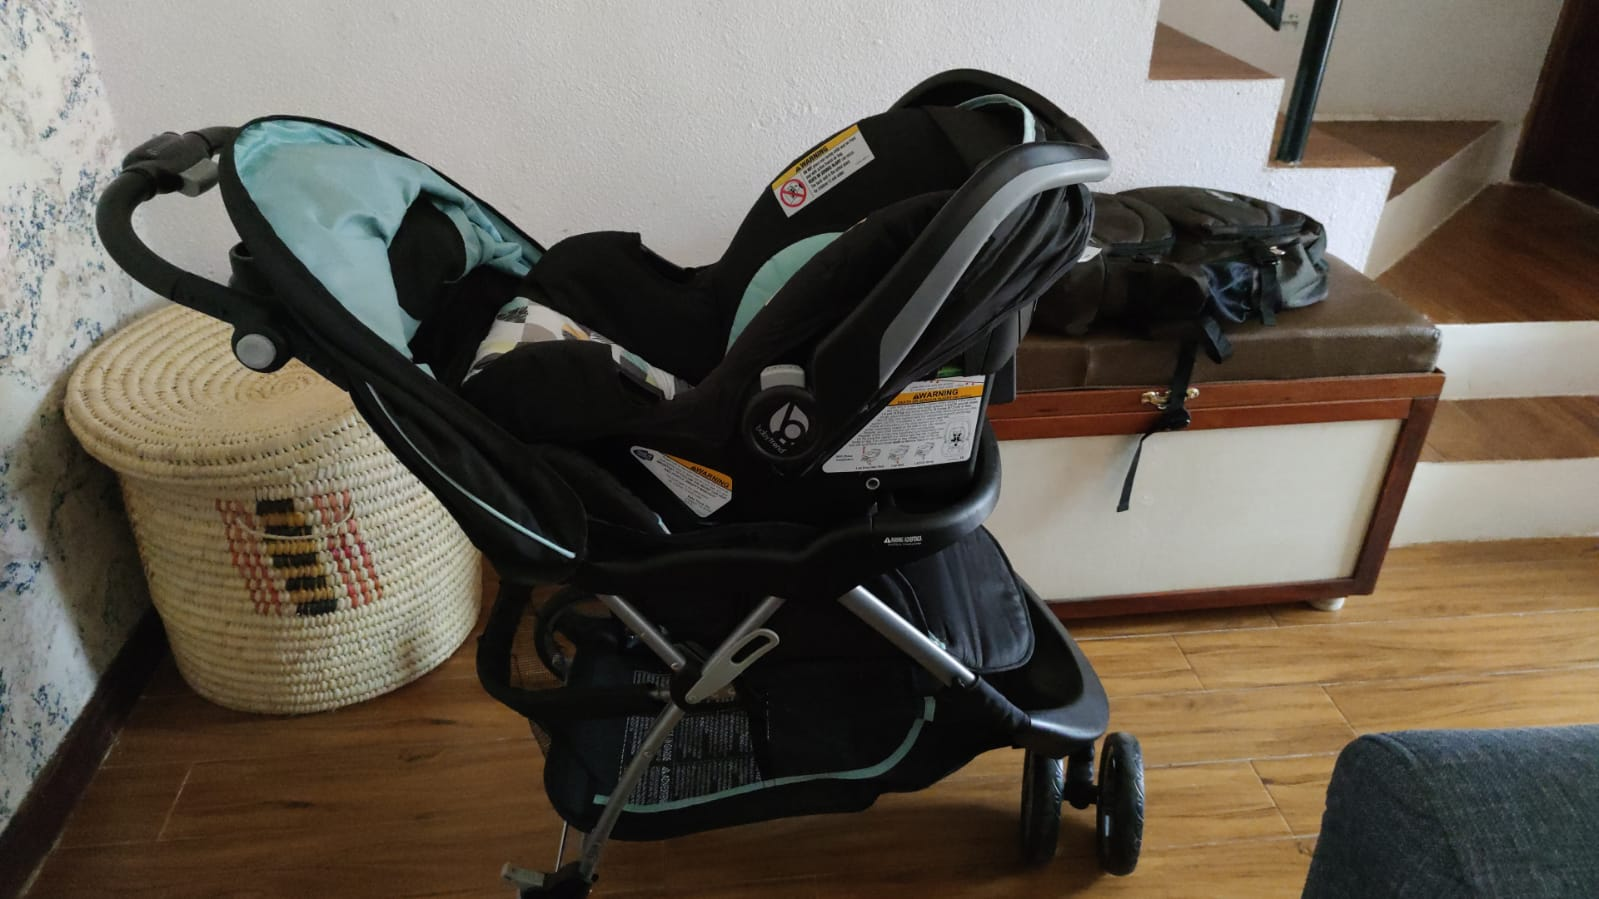 Baby car seat and stroller in one